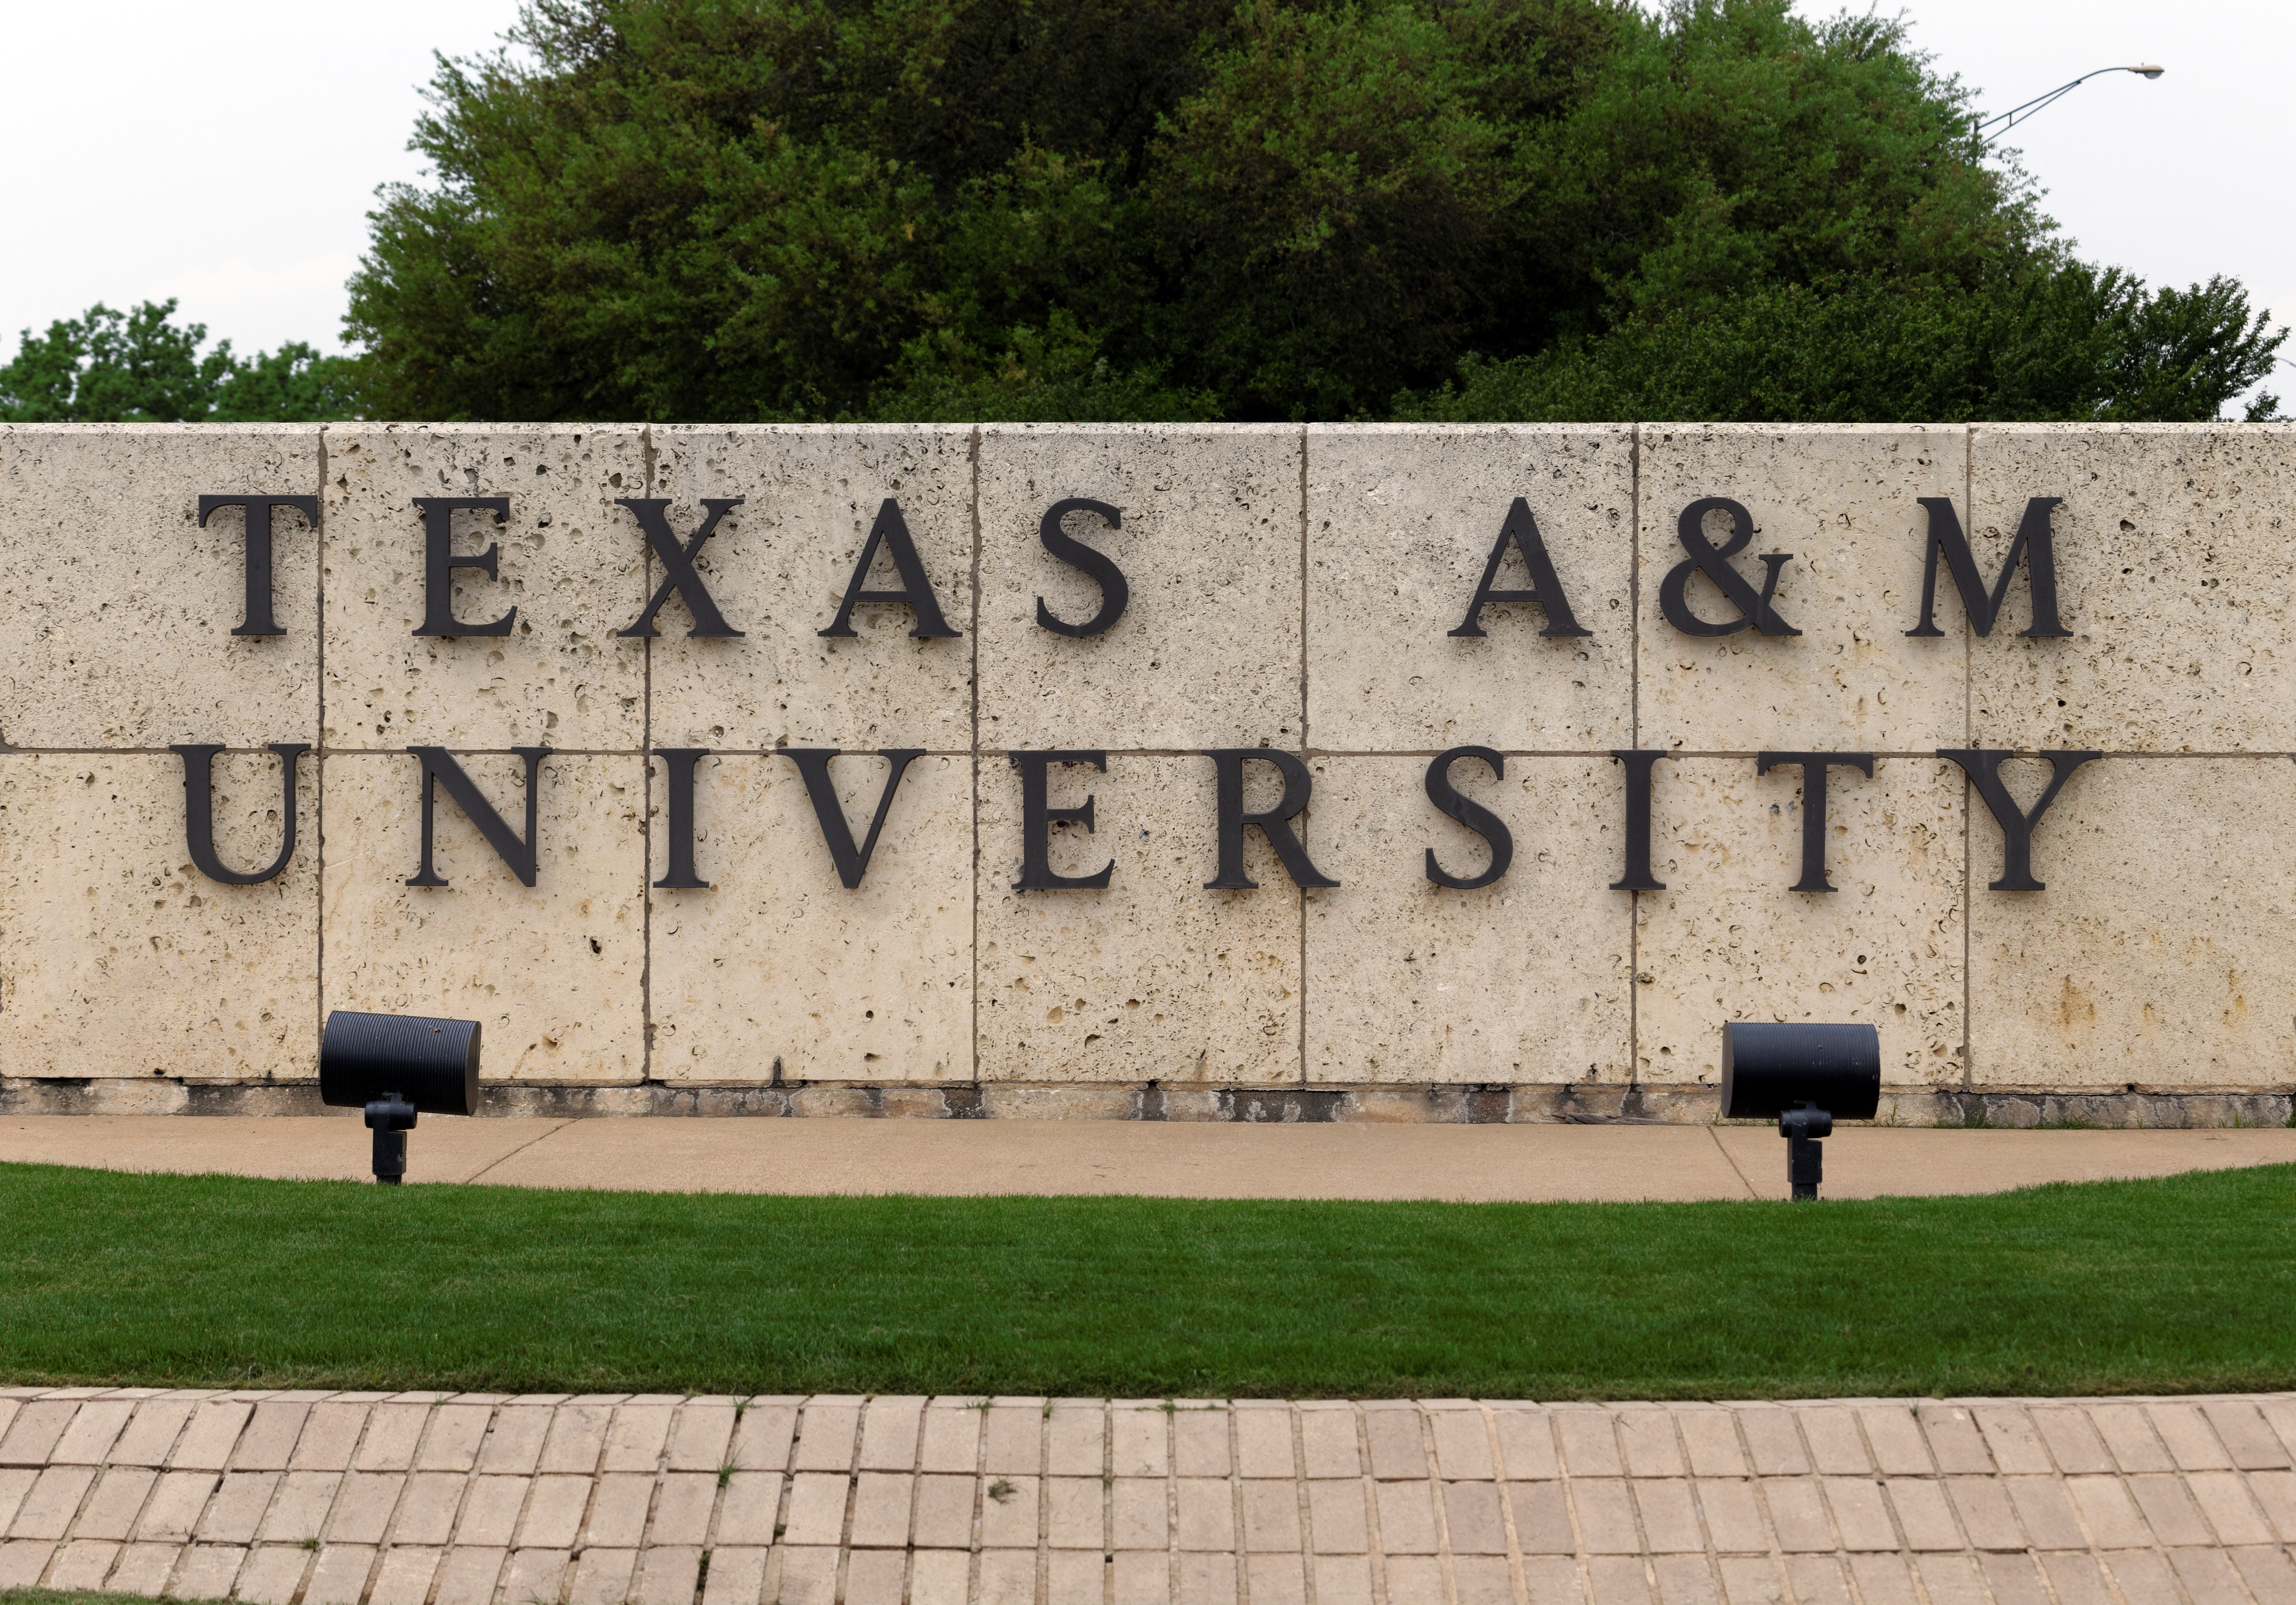 Judicial Watch announced Thursday that they will be assisting Zachor Legal Institute in investigating possible funding of Texas A&M campuses by the Qatar government. Katherine Welles, Shutterstock.